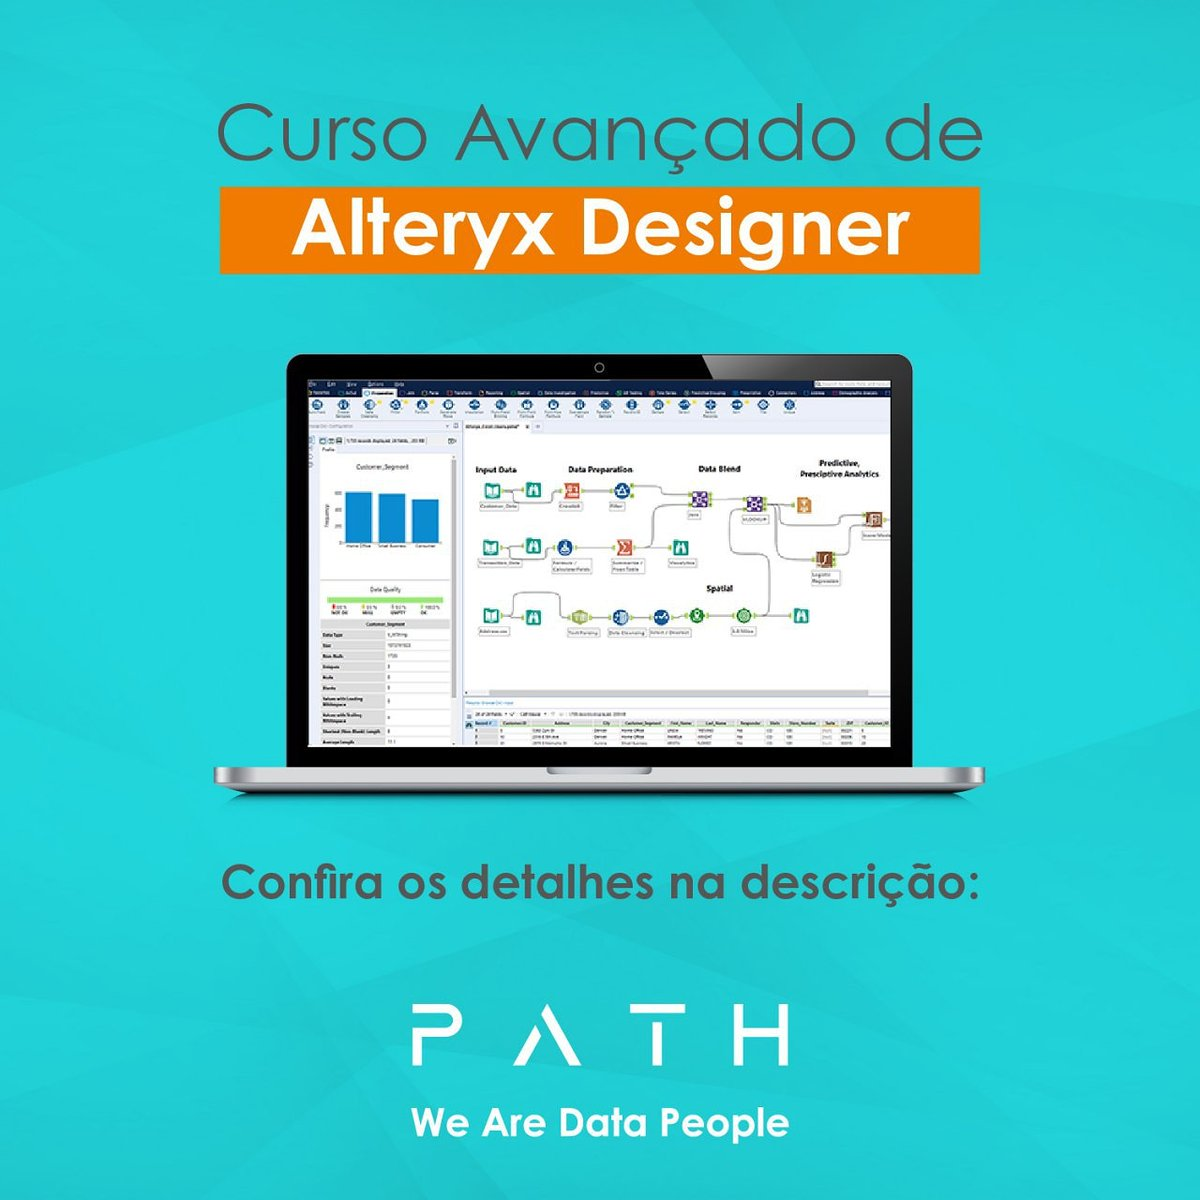 Este curso foi desenvolvido para usuários intermediários do @Alteryx.   Confira nossa página de treinamentos Alteryx Designer: https://t.co/u3WeEkILzb  #alteryx #TogetherWeSolve #AlteryxAnalytics #JuntosSolucionamos #path #pathdatafan #pathalteryx https://t.co/LtI6hVz4Mm